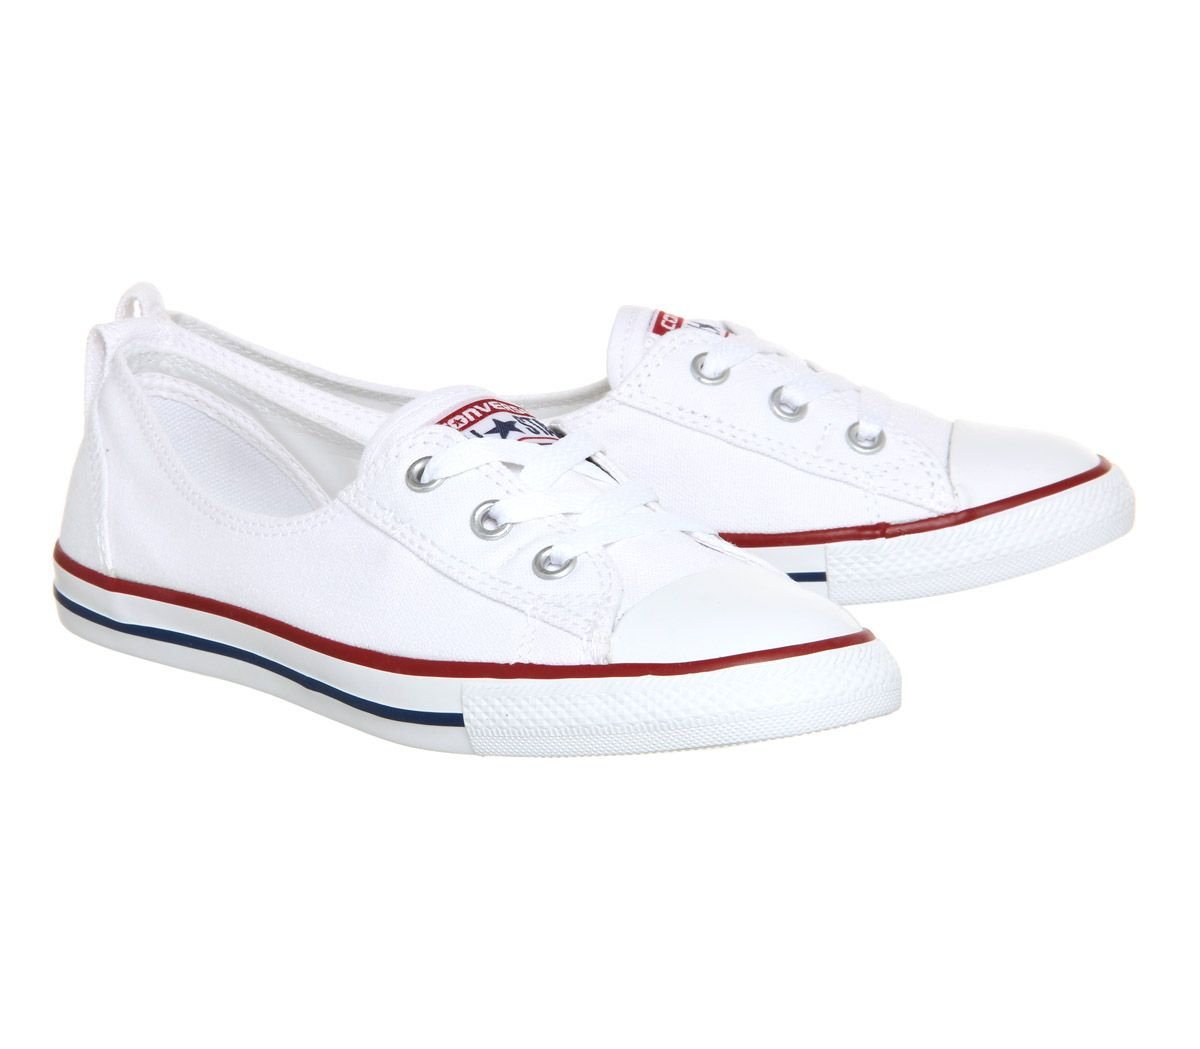 95adabfbf93de2 Converse Ctas Ballet Lace Optical White Exclusive - Hers trainers ...